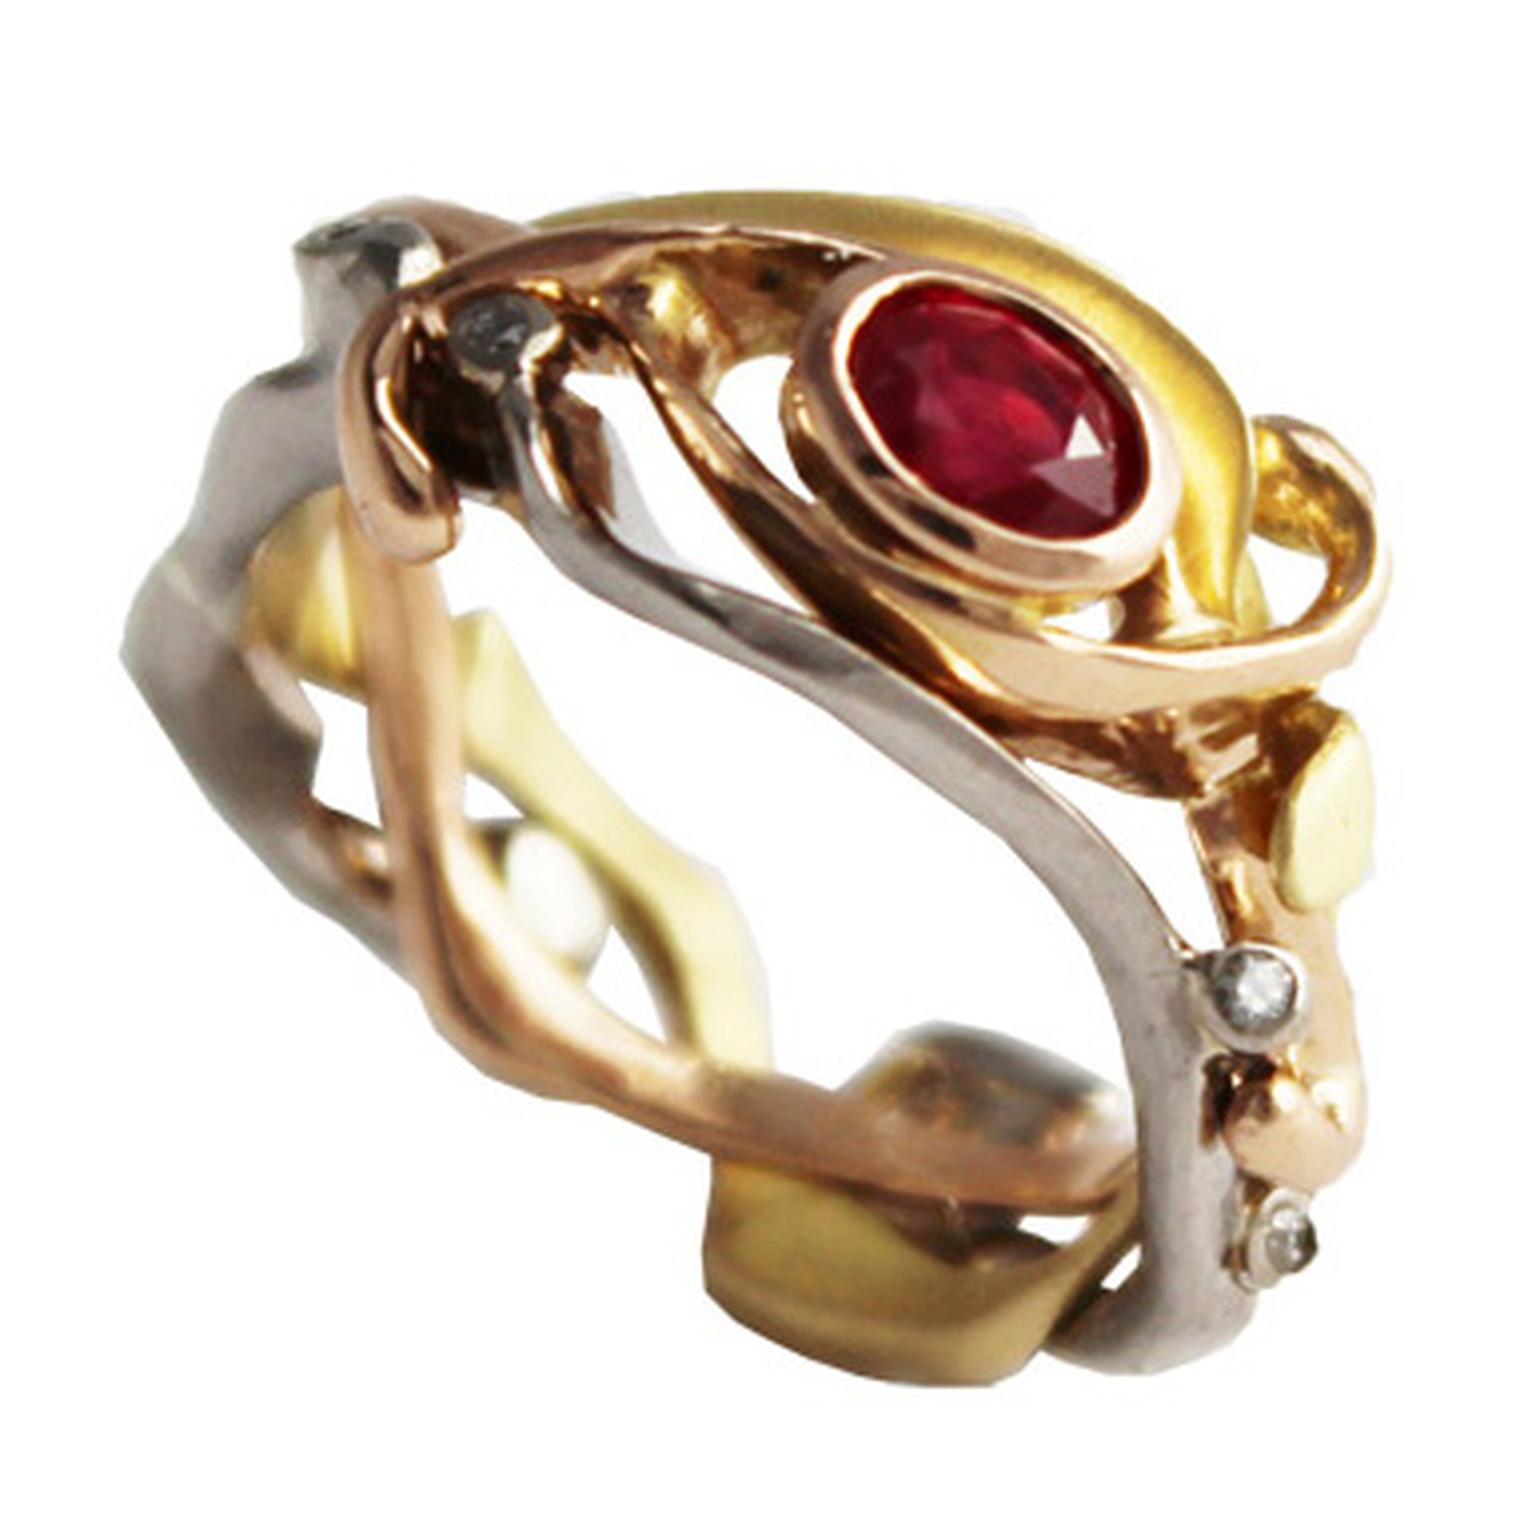 Daniel Gallie ruby ring with rose, white and yellow gold.